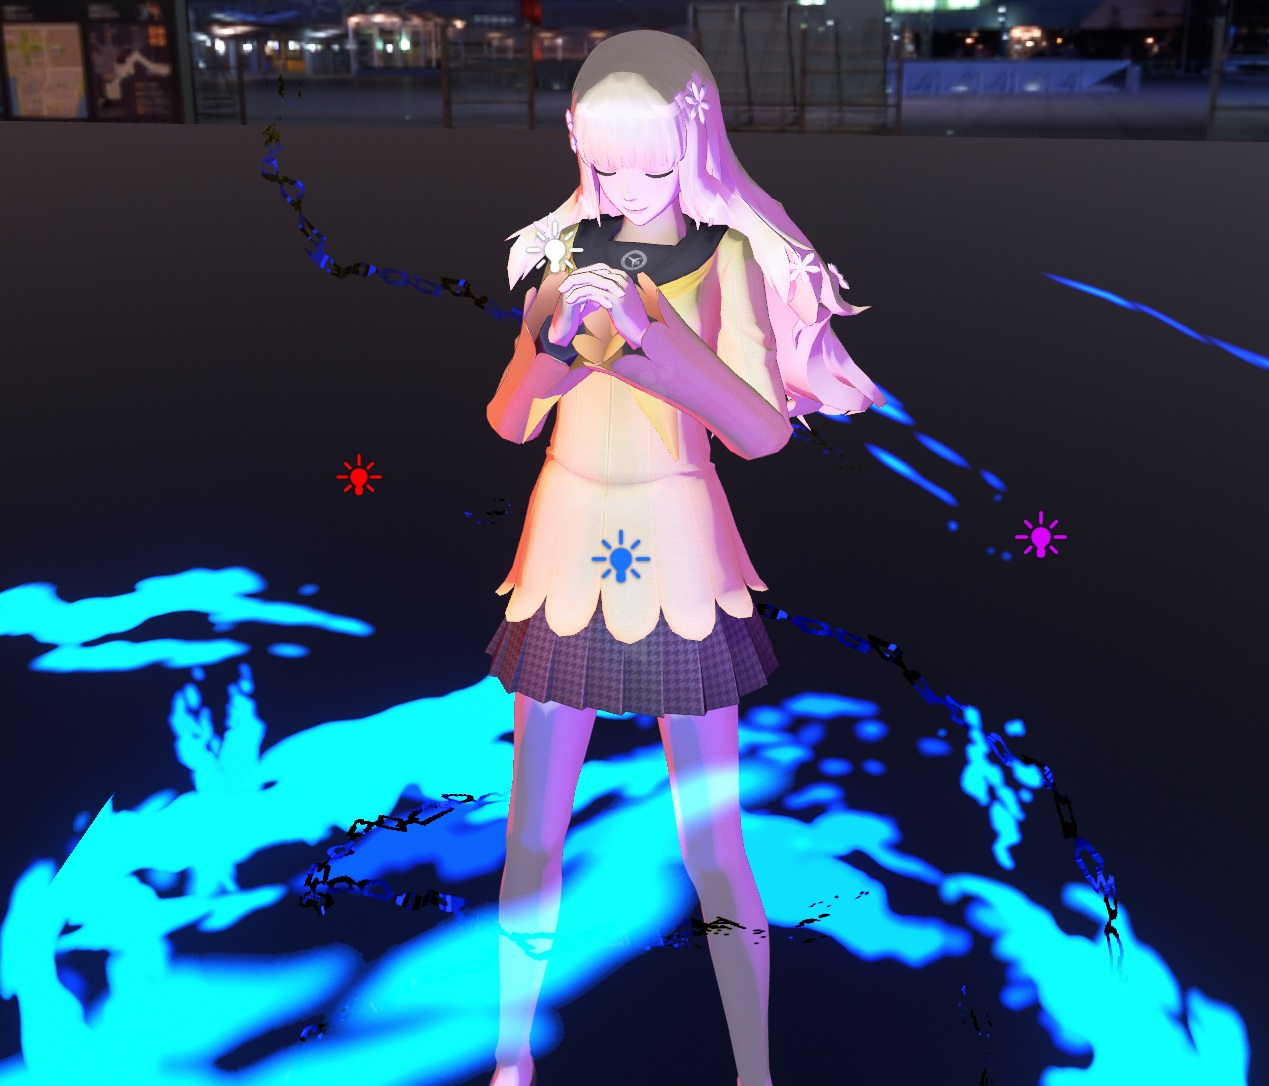 Vrchat Glowing Shaders